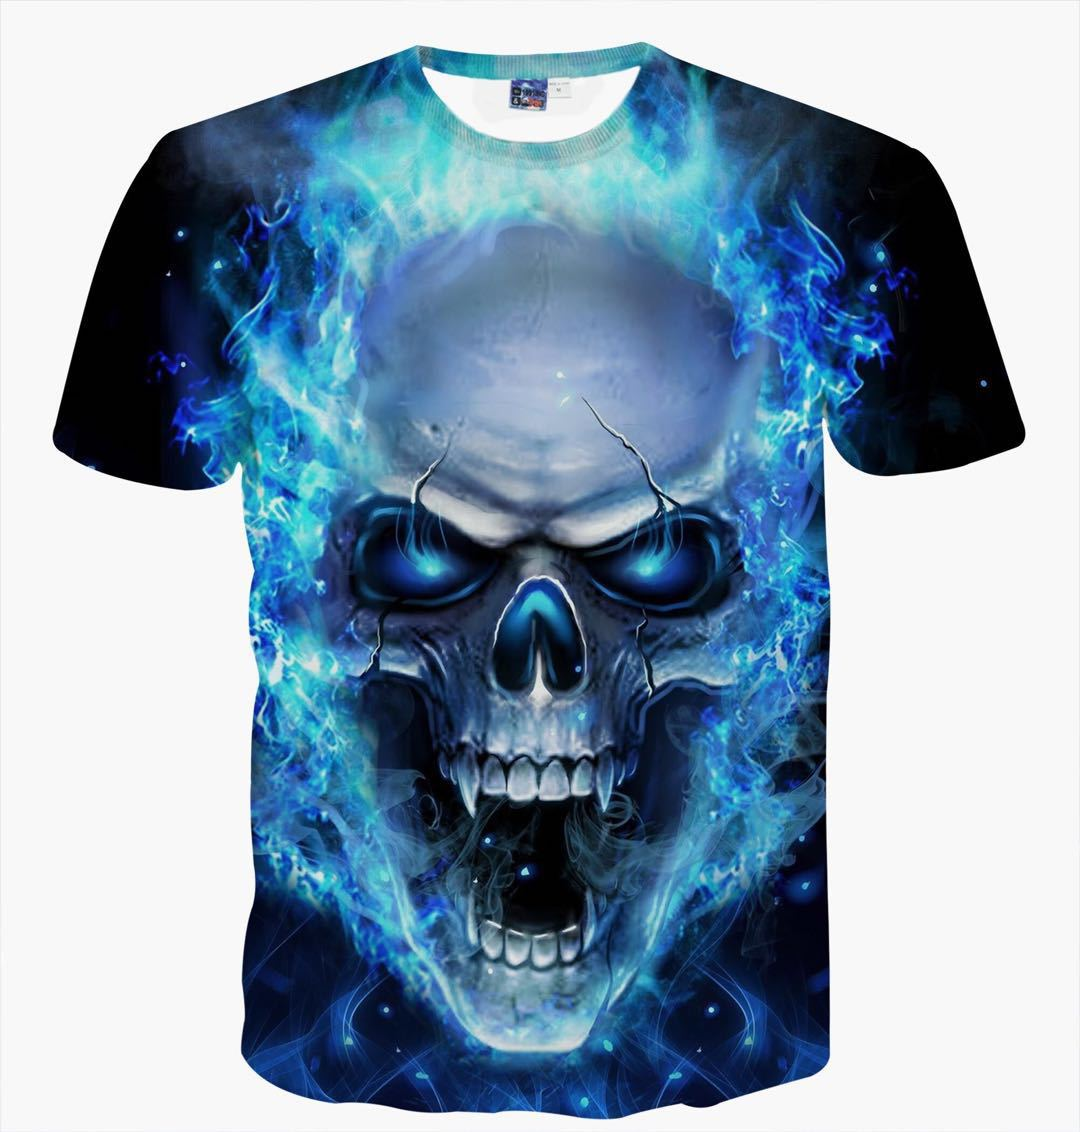 2018 Summer 3D Printed Skull WomenMen's O-neck T-shirt Printing Flame Short-sleeved Blue Couple Tee Fashion Loose T-shirts